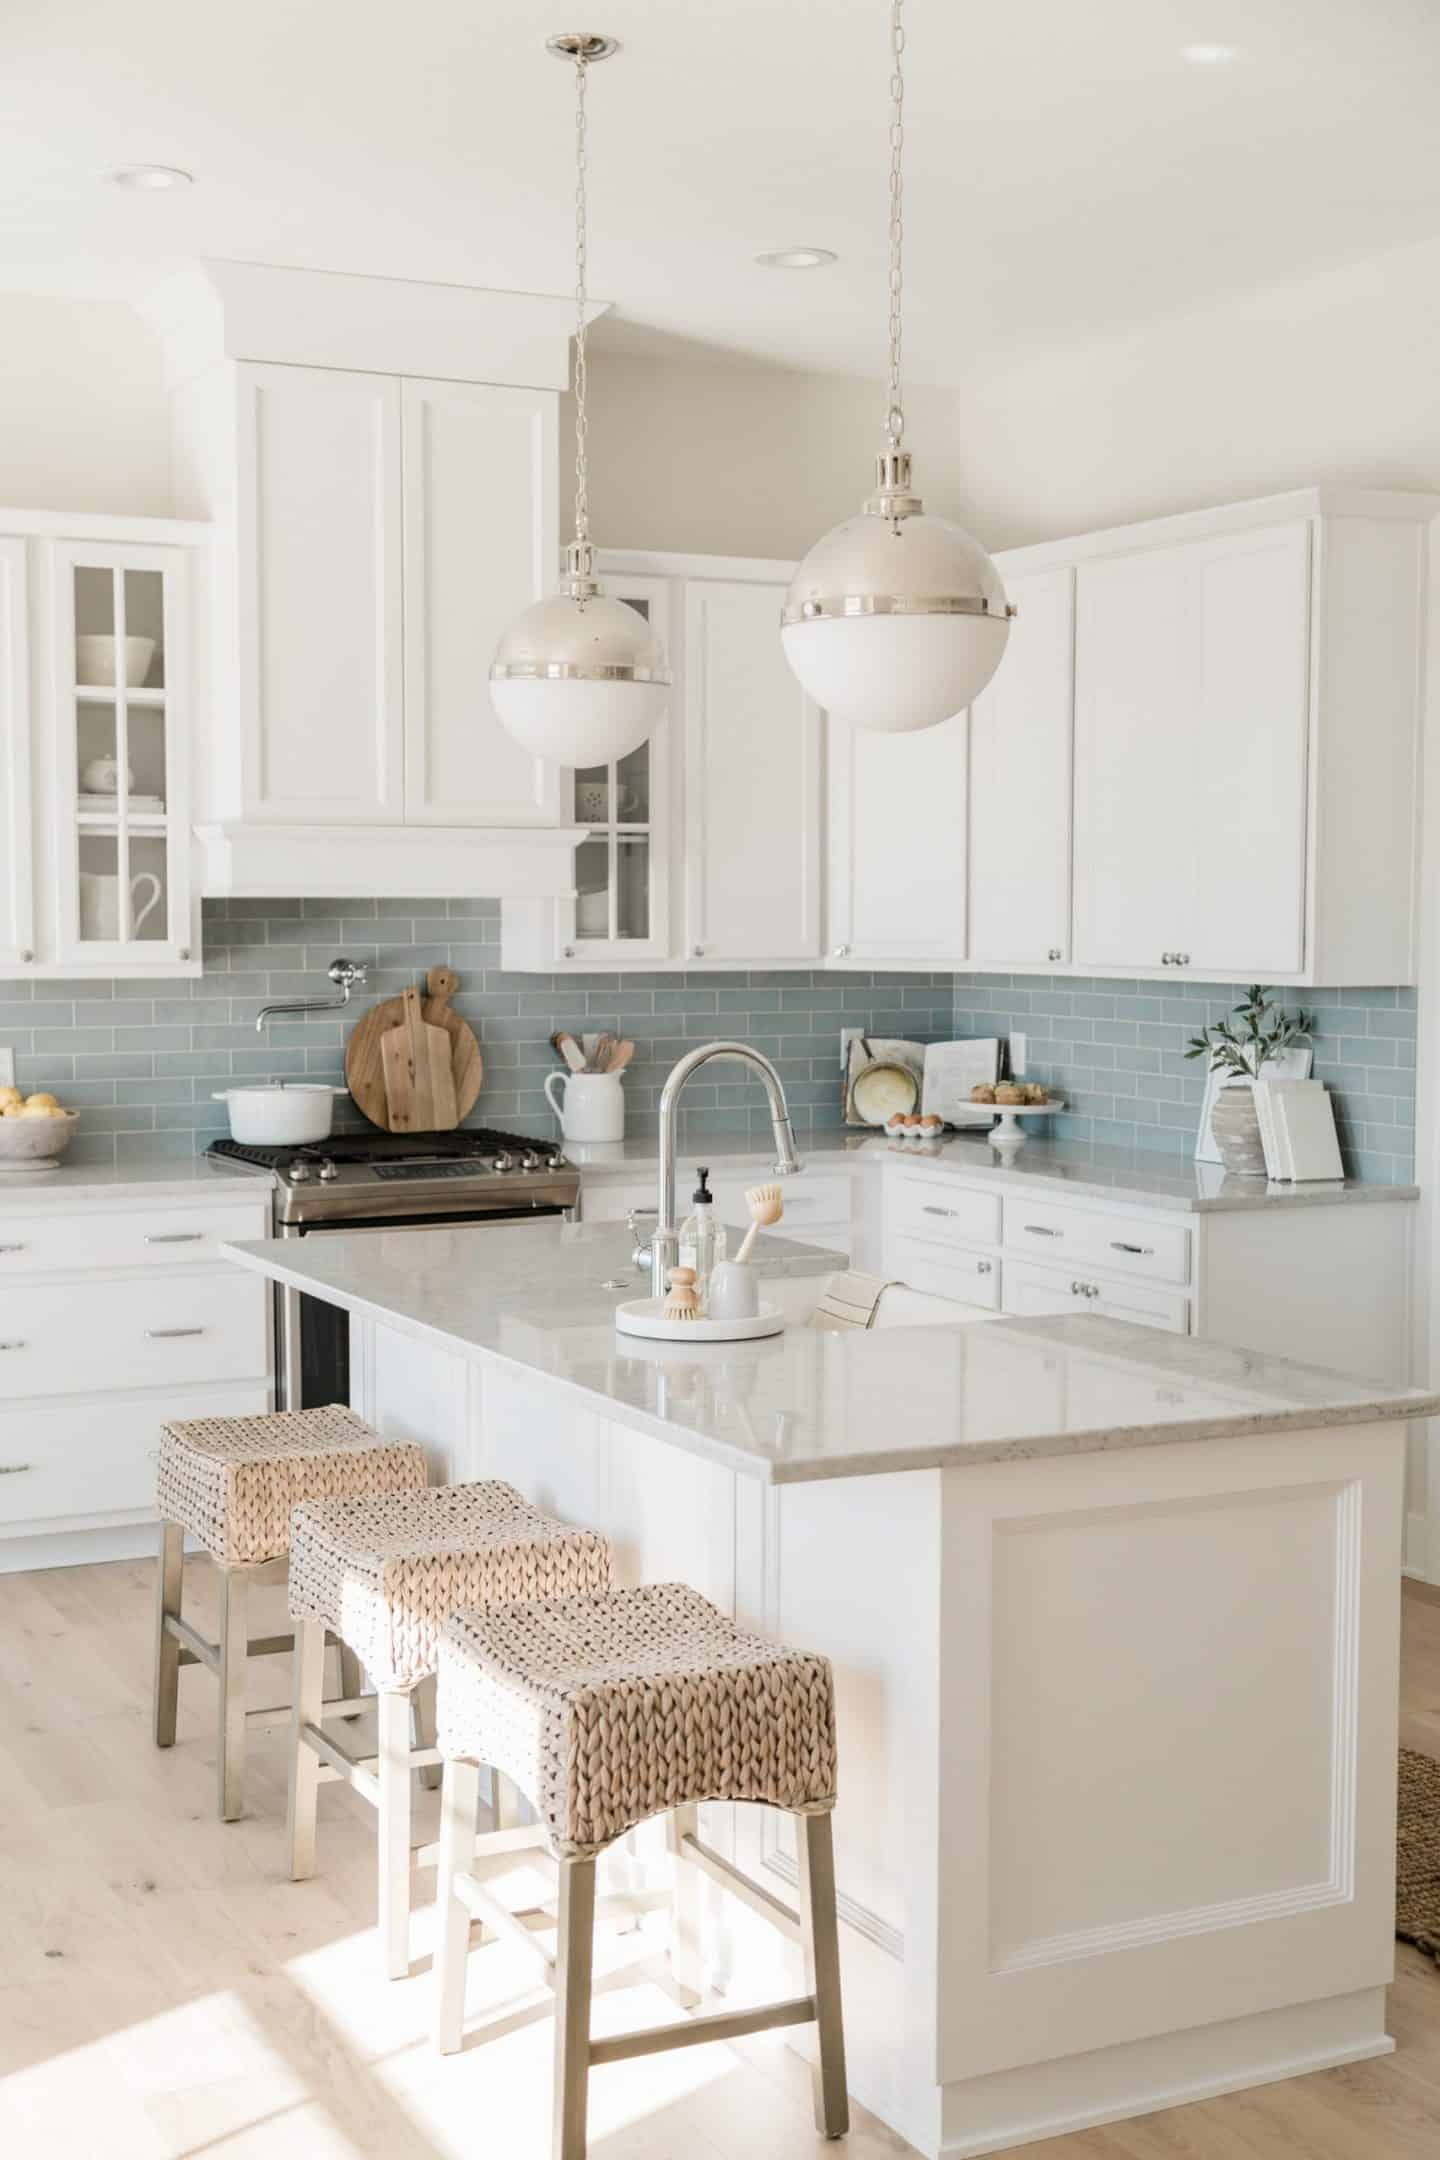 Airy White Kitchen, Ocean Blue Subway Tile Backsplash, Light Wicker Bar Stools at Kitchen Island